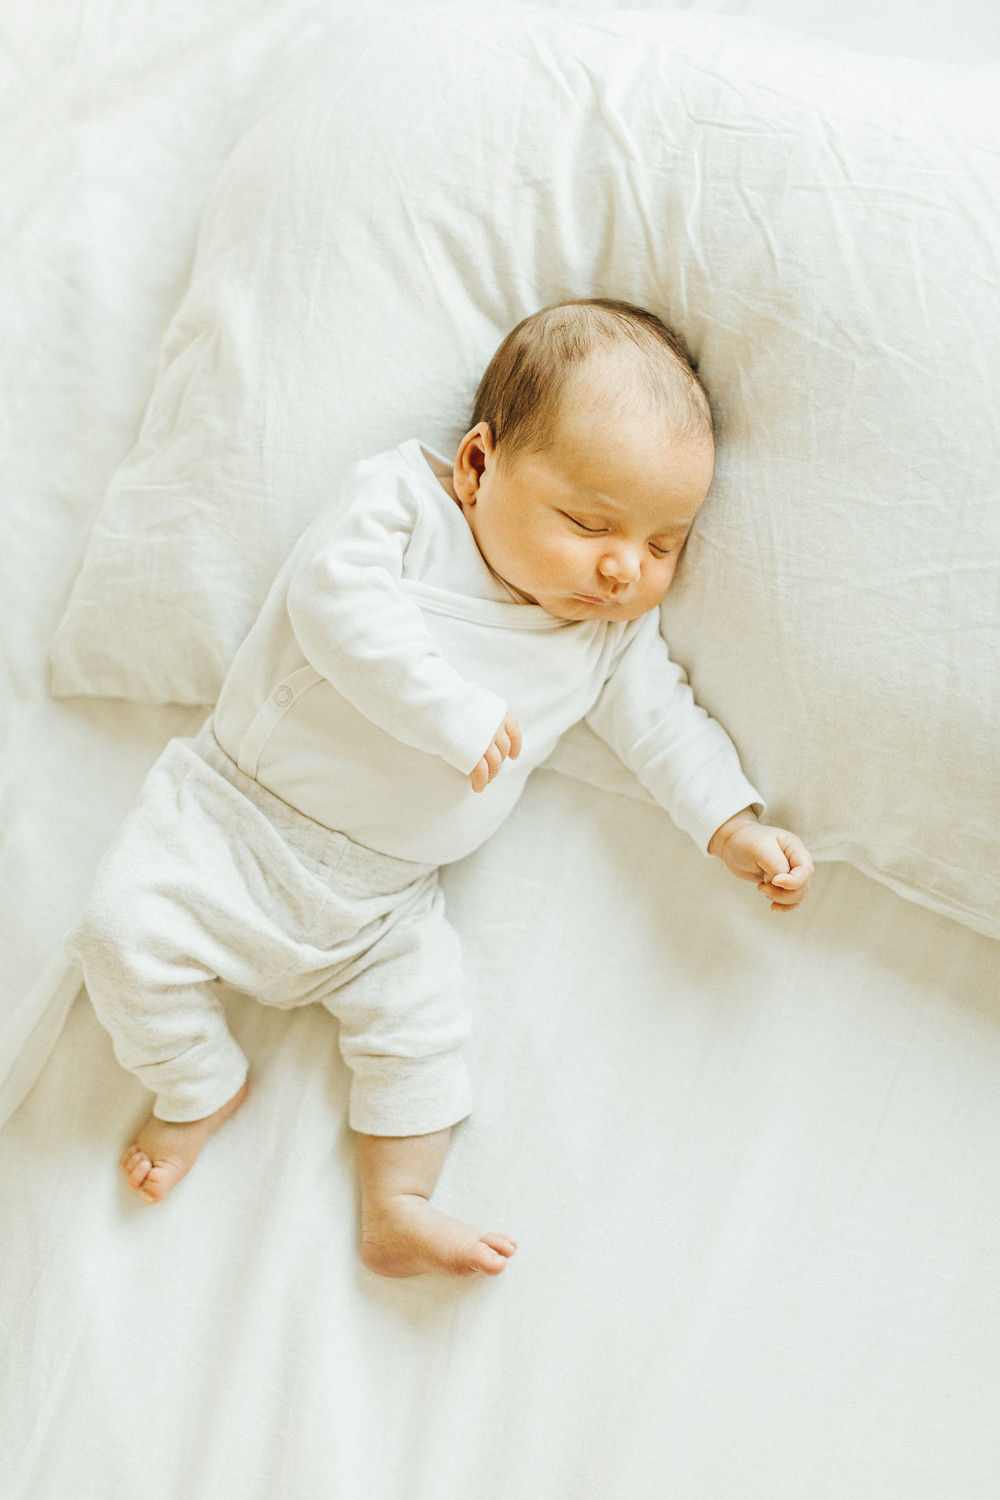 Lifestyle Newborn Photographer in Palo Alto